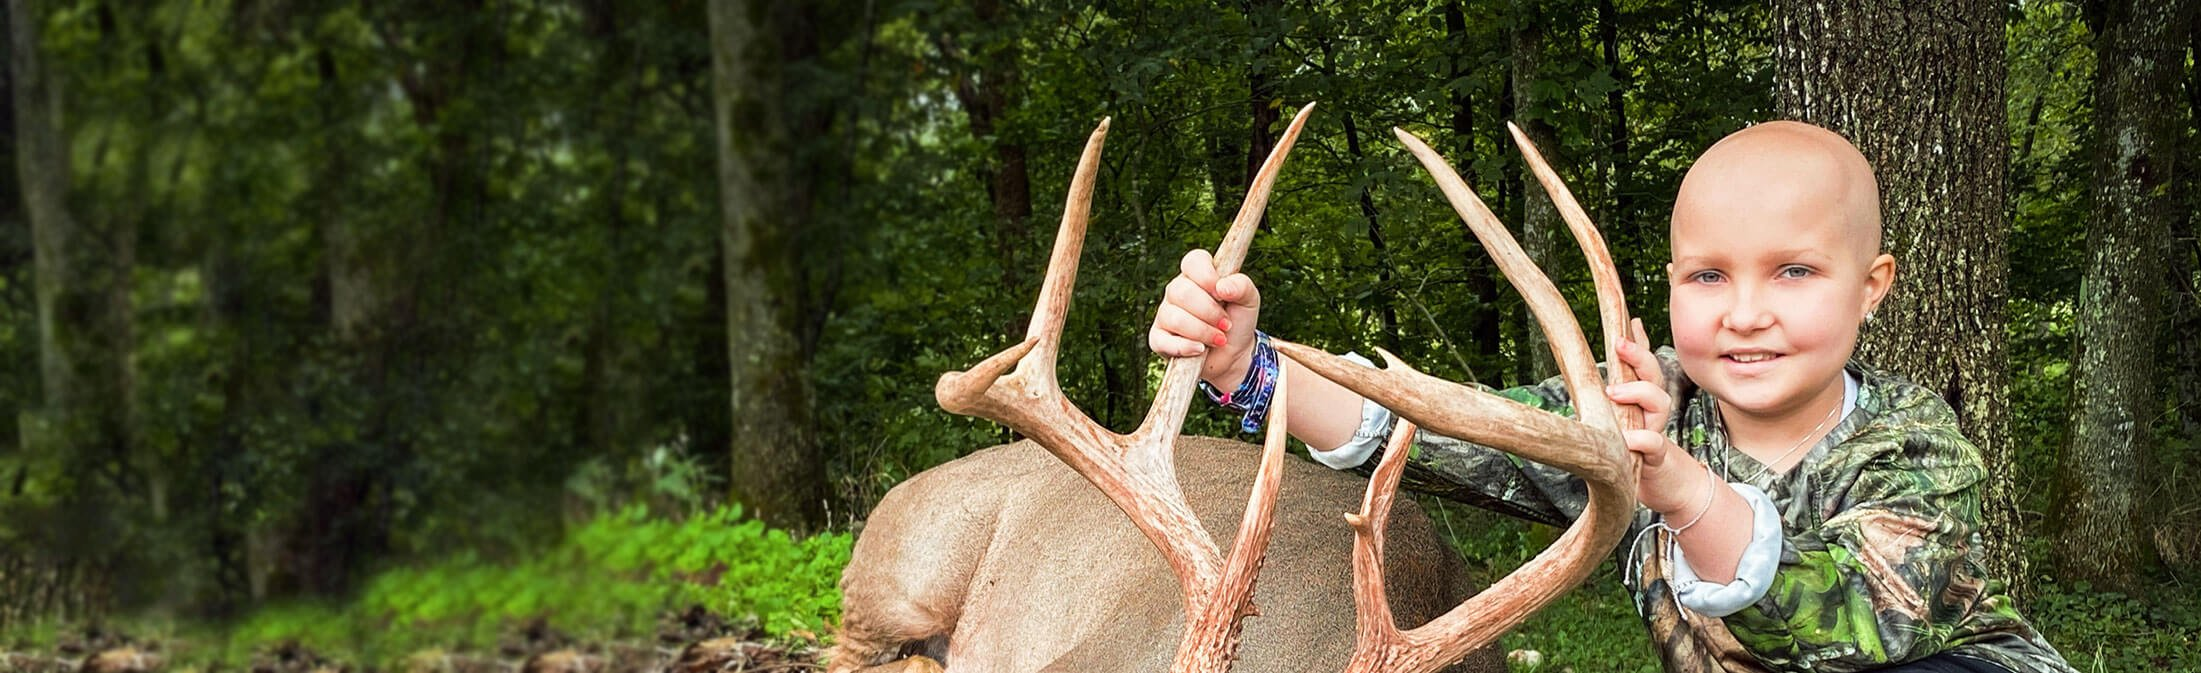 Catch-A-Dream child on whitetail hunting adventure